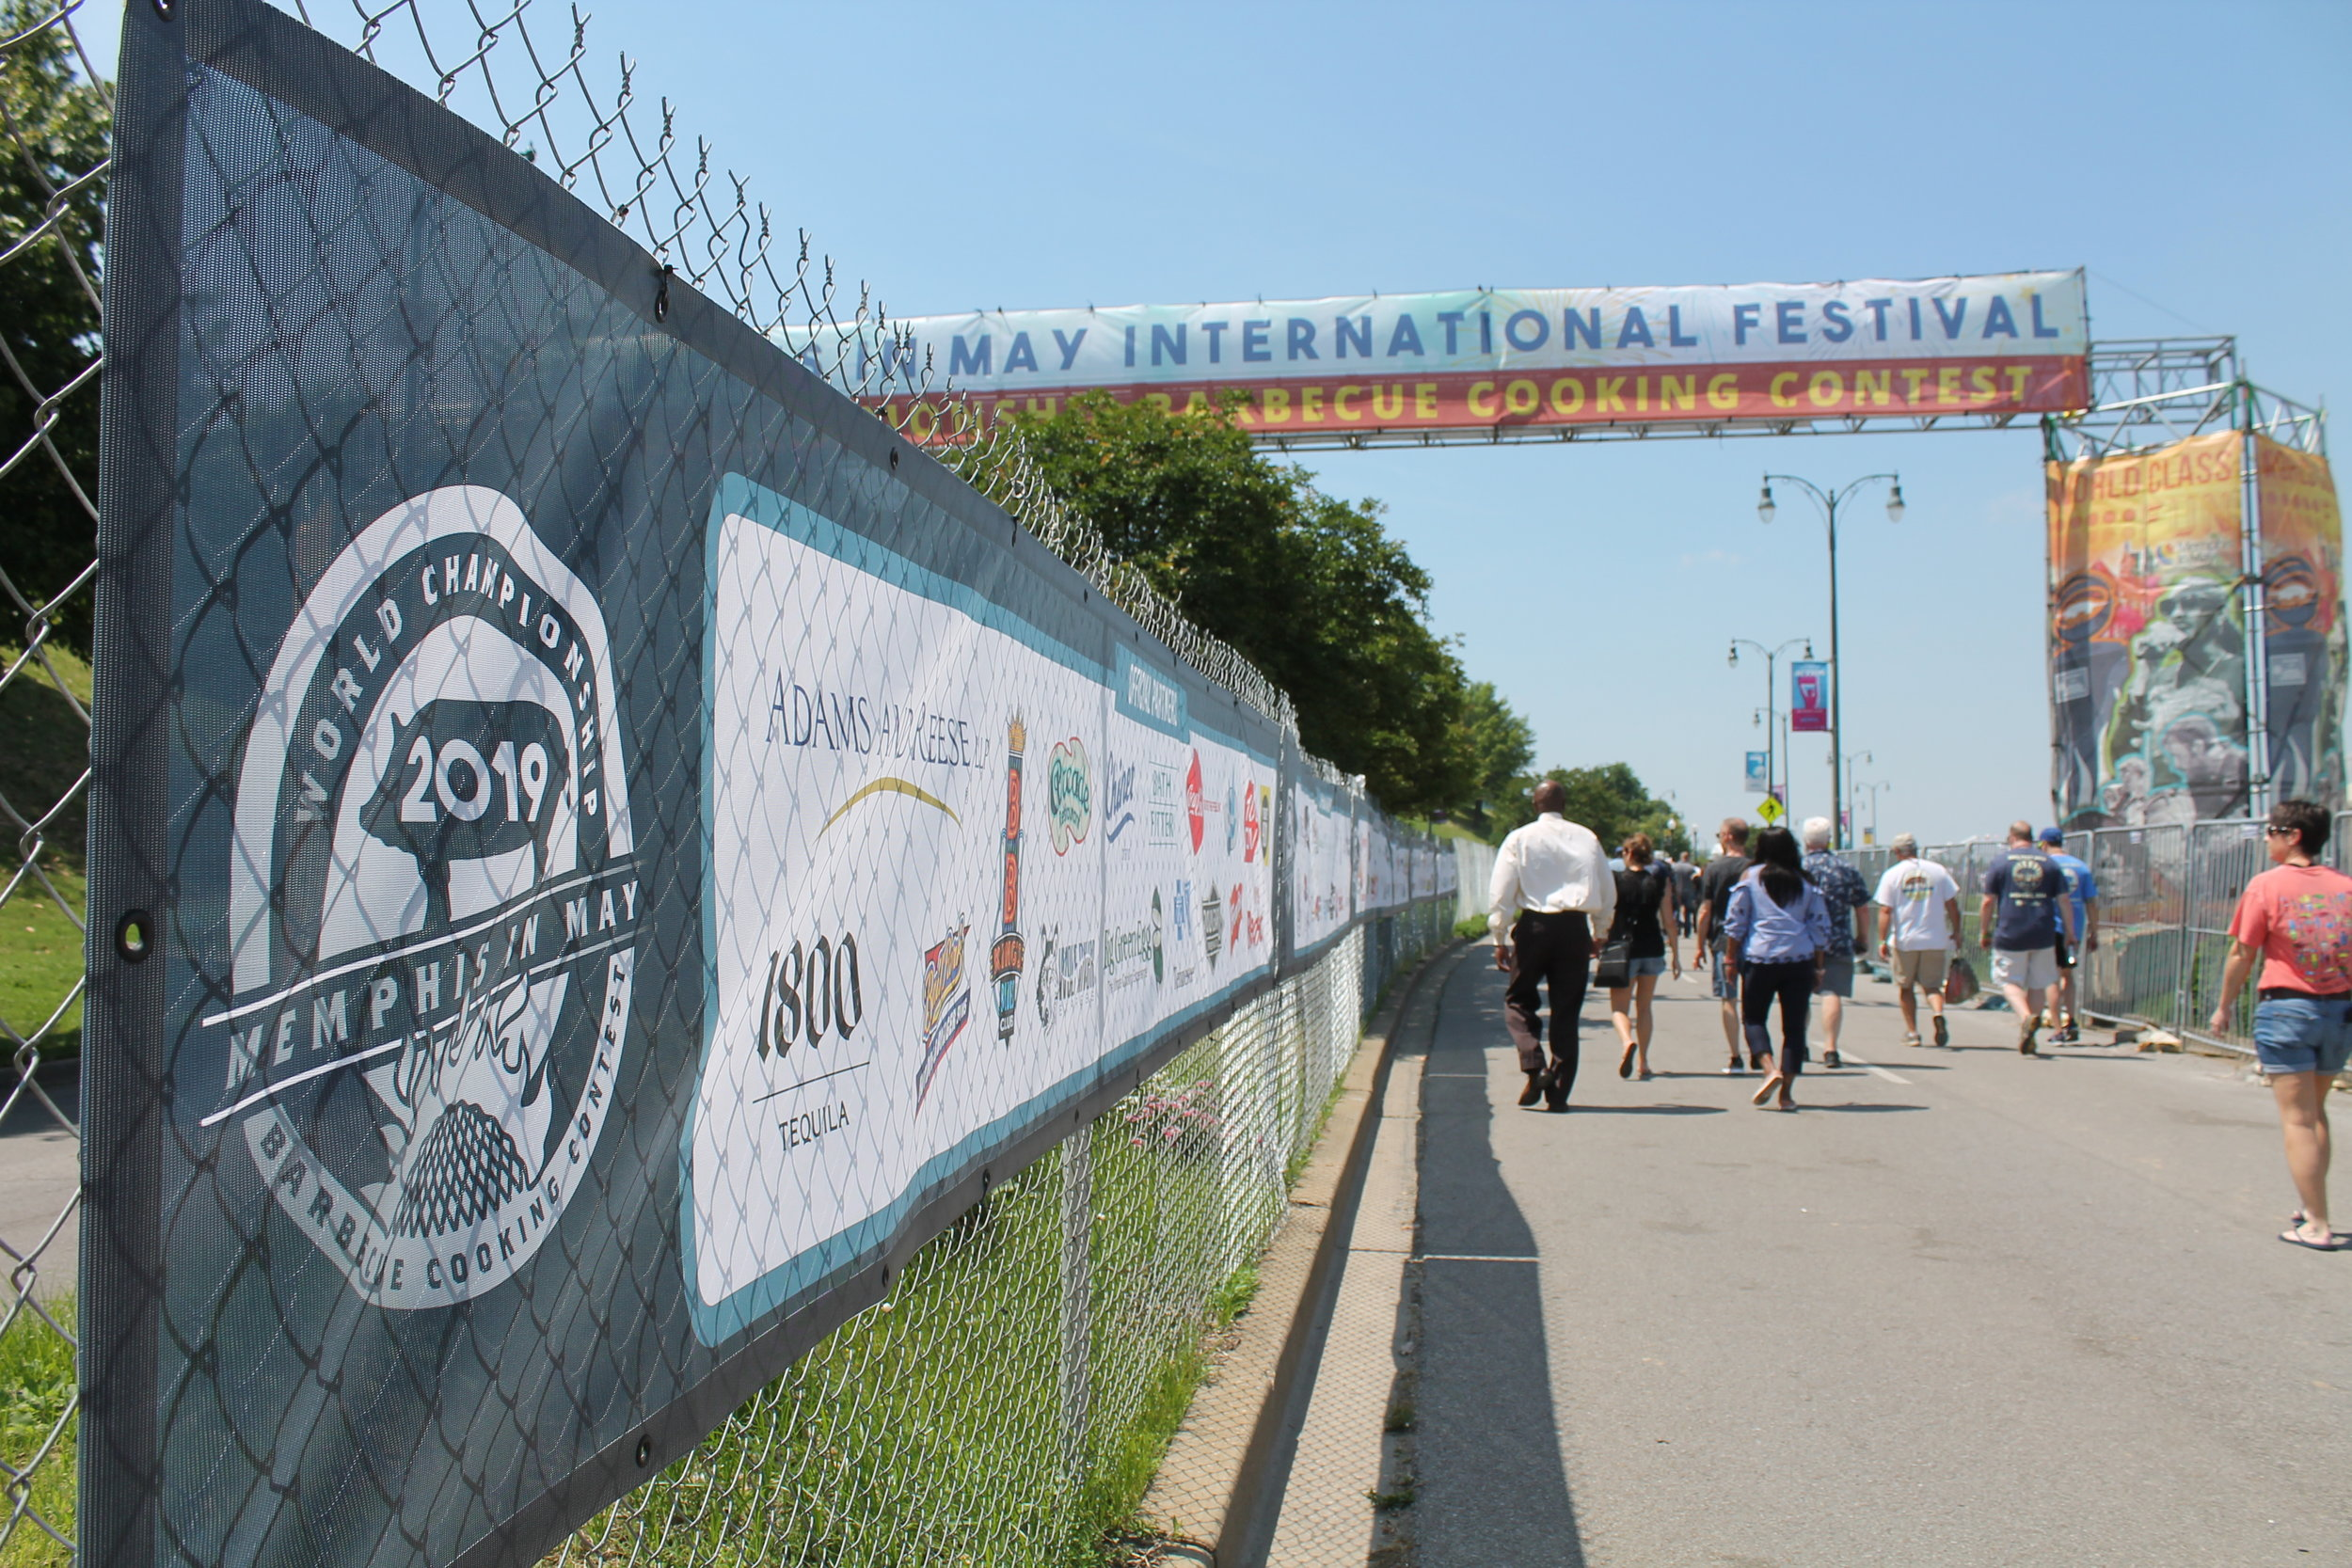 Memphis-In-May_World-Championship-Barbecue-Cooking-Contest_Fence-Mesh-Banners_Events_LSIGraphics_Memphis-TN ..